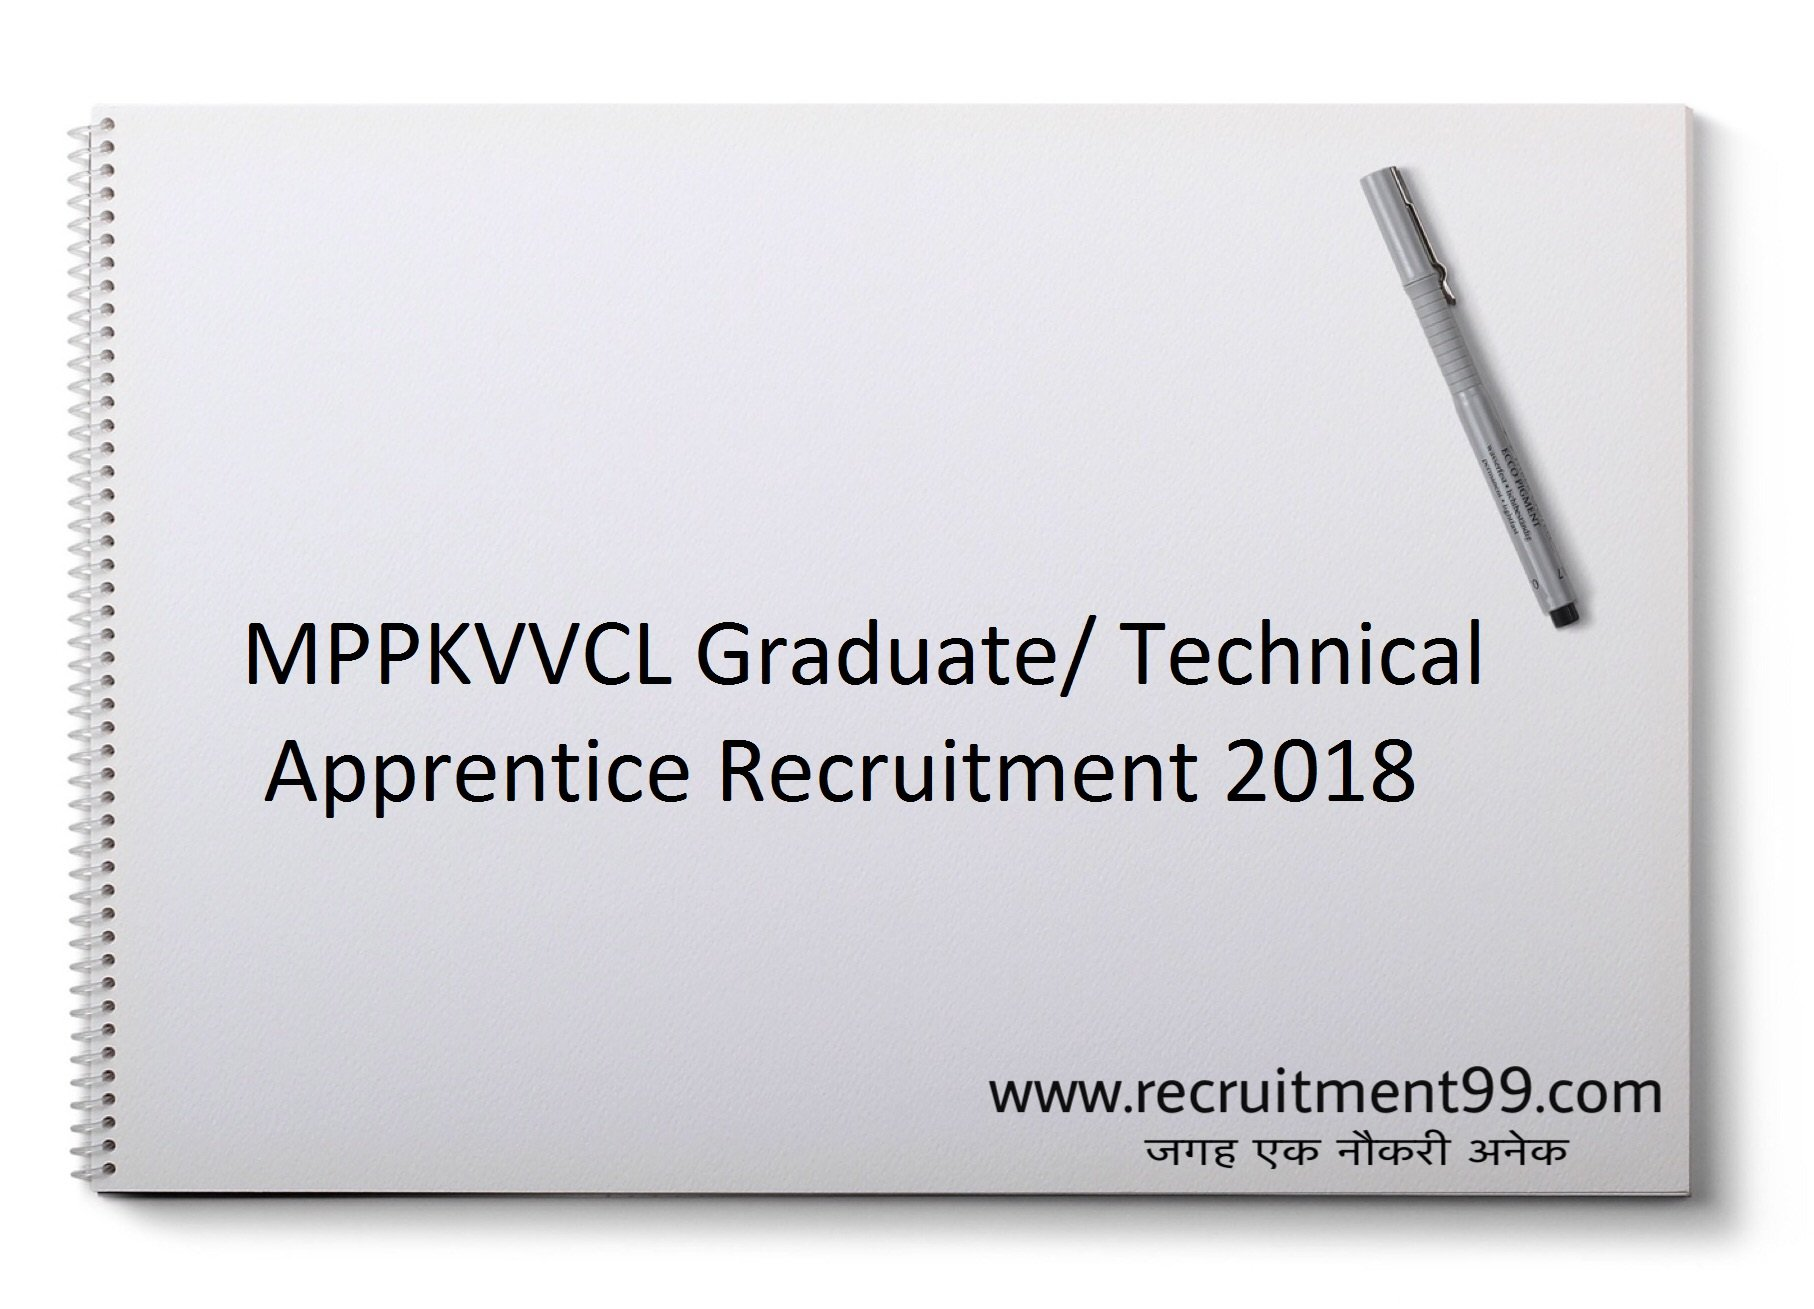 MPPKVVCL Graduate/ Technical  Apprentice Recruitment Admit Card Result 2018